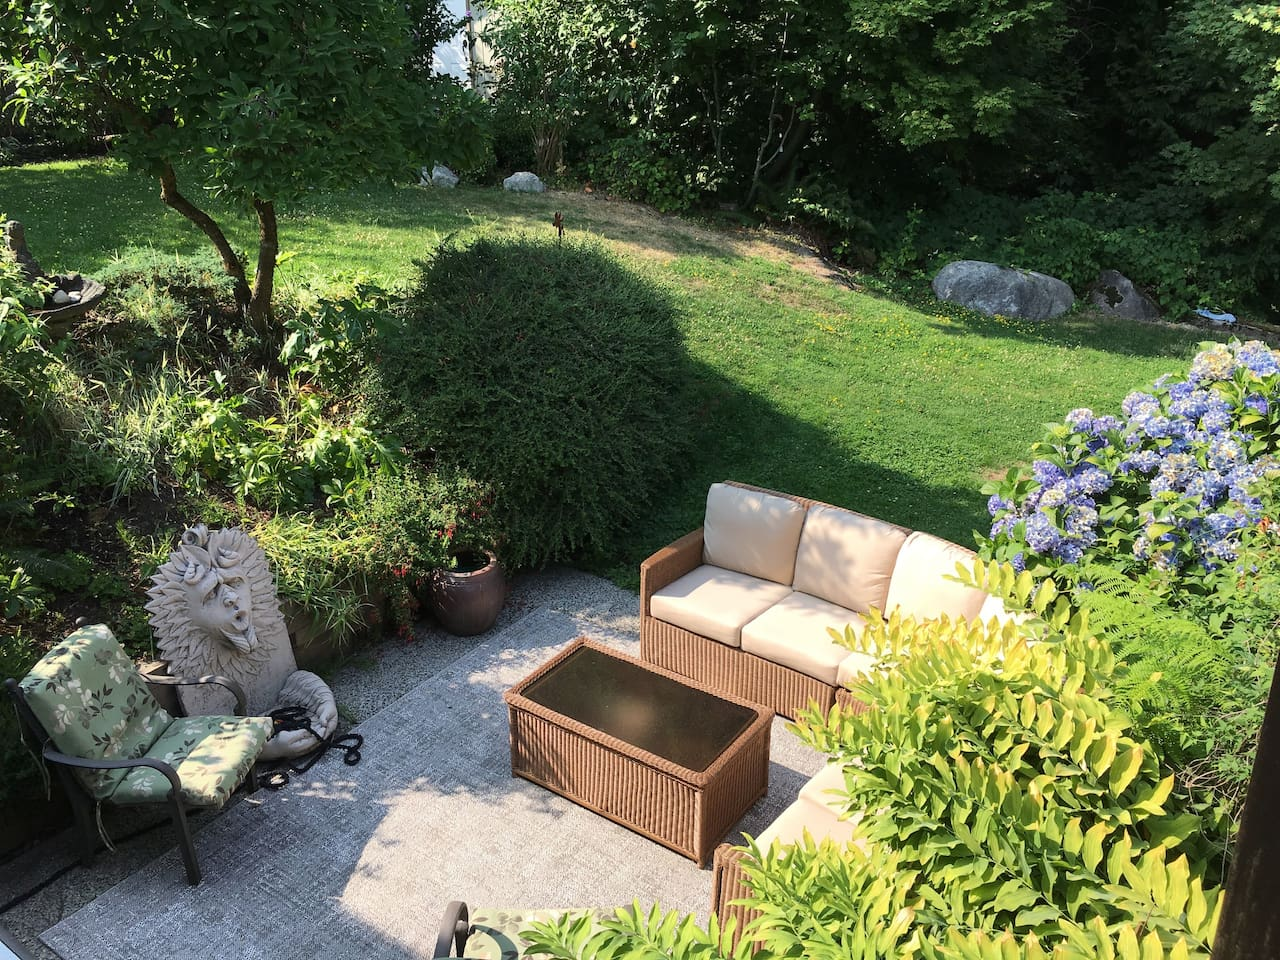 Very private yard to relax in. Overlooks beautiful garden & forest